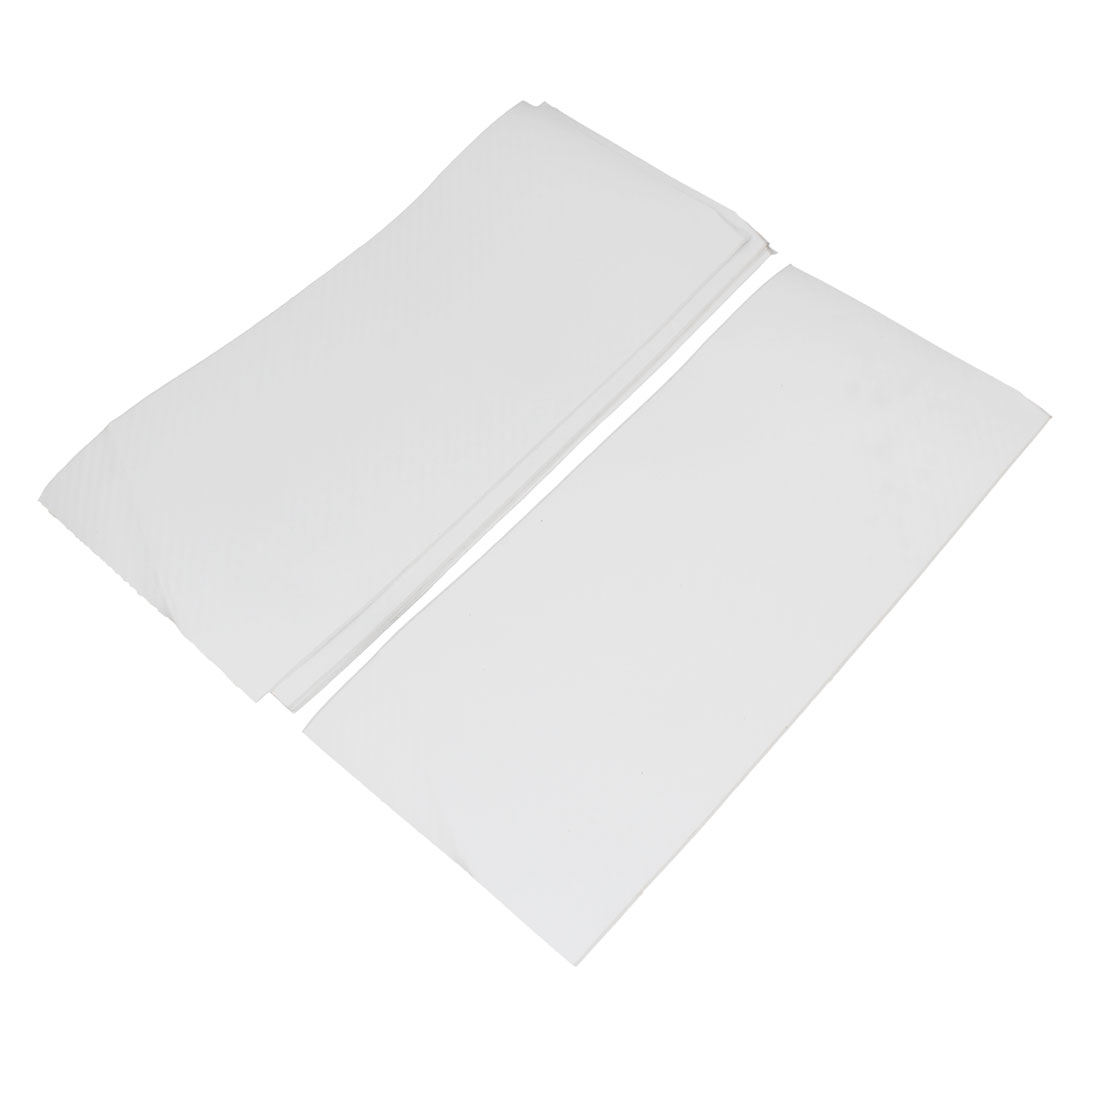 5pcs 300 x 134mm Self Adhesive Carbon Fiber Protective Film Sticker White for Car